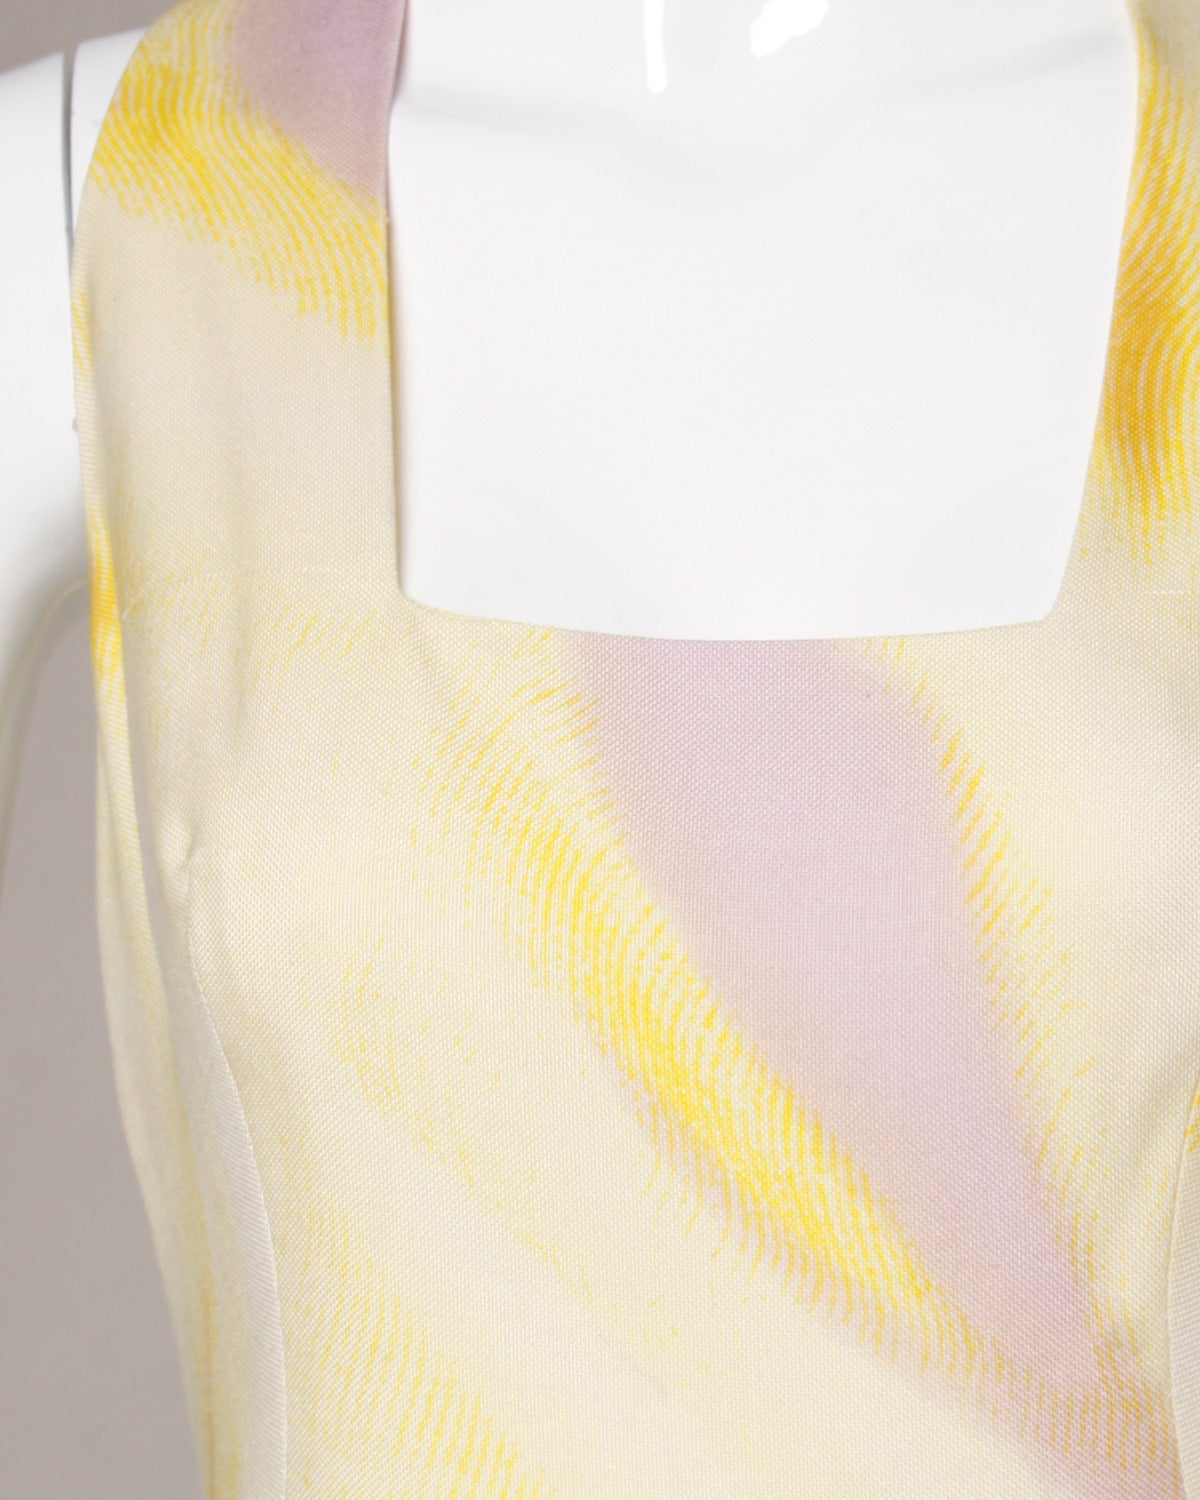 Beige Gianni Versace Couture Vintage 1990s Ombre Pastel Silk Sheath Dress For Sale